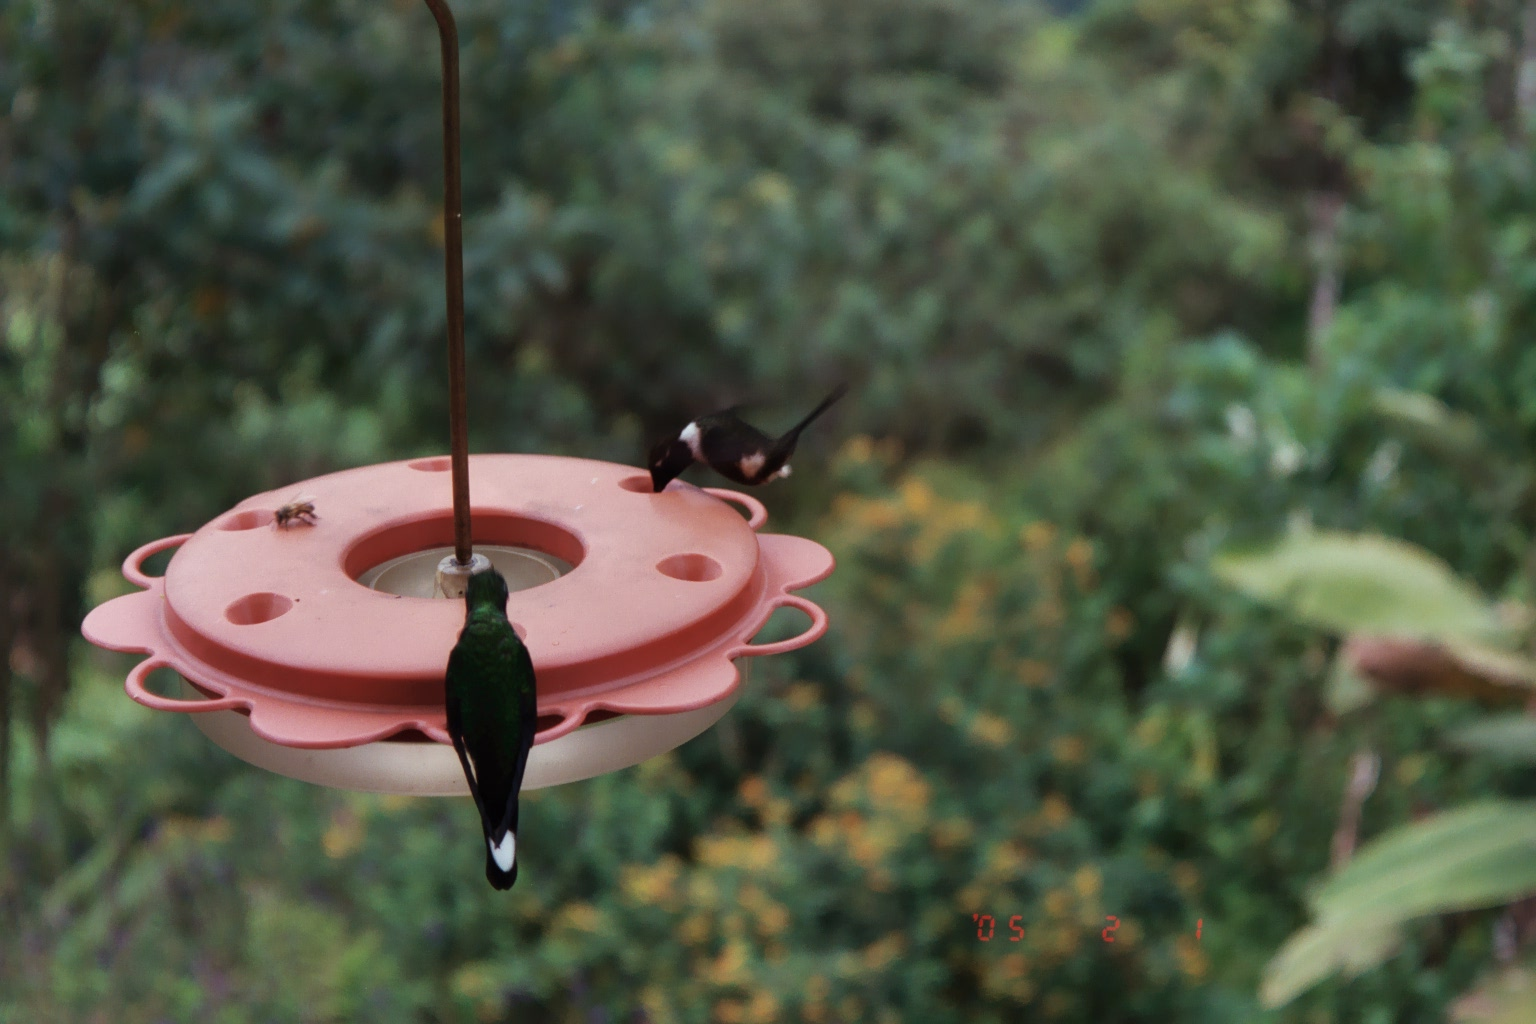 A couple other hummers